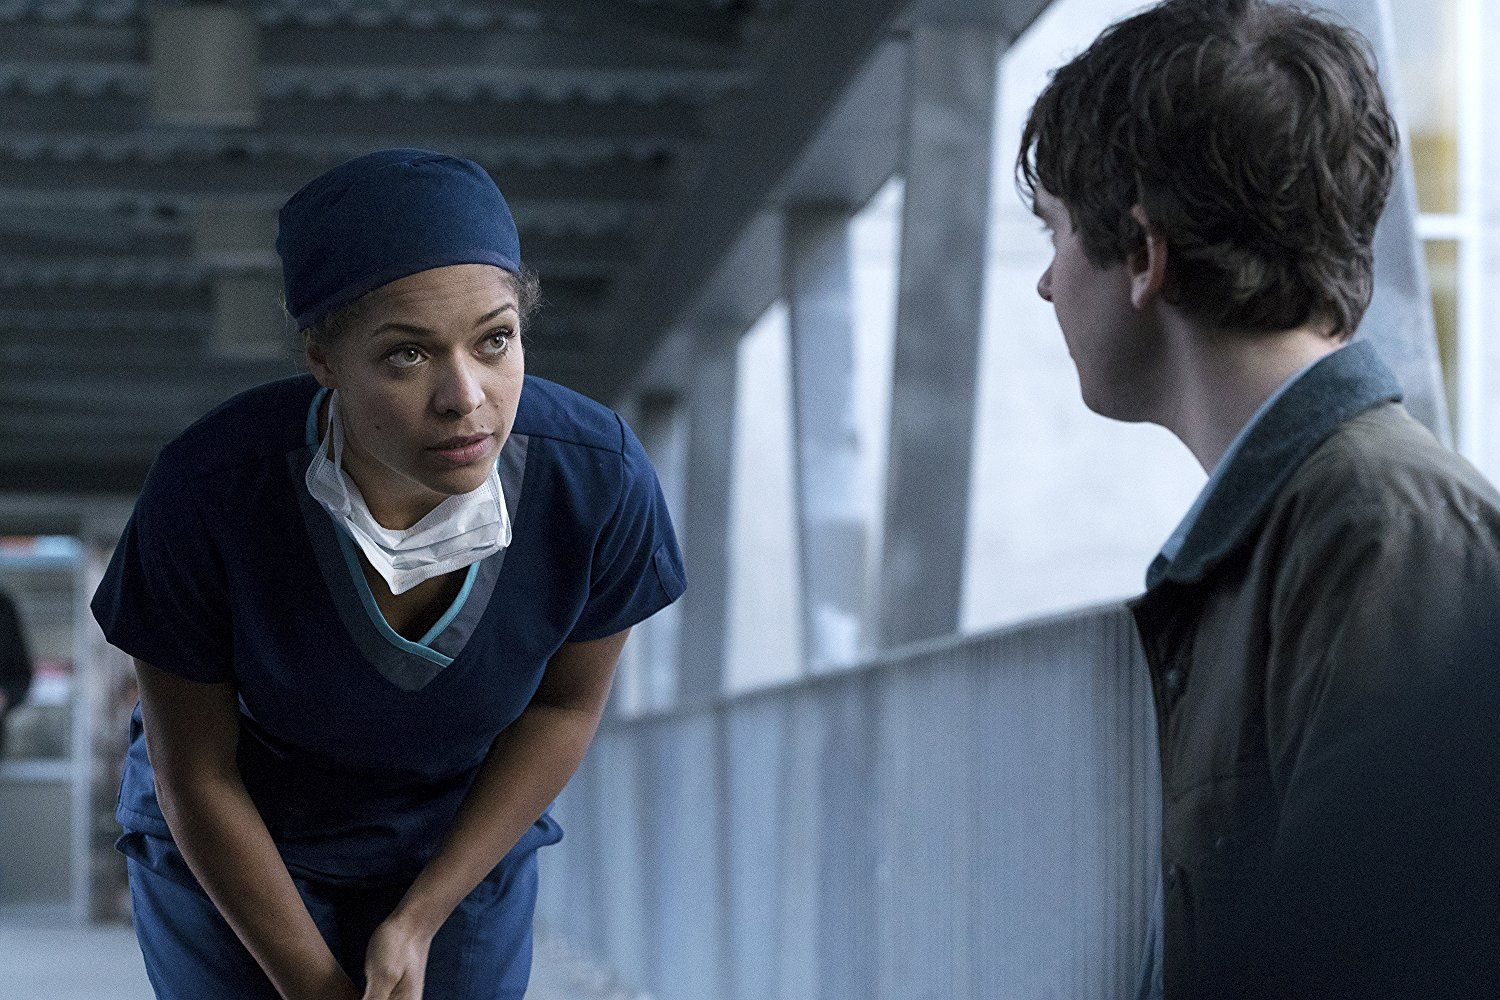 The Good Doctor Series Trailer Promos Featurettes Images And